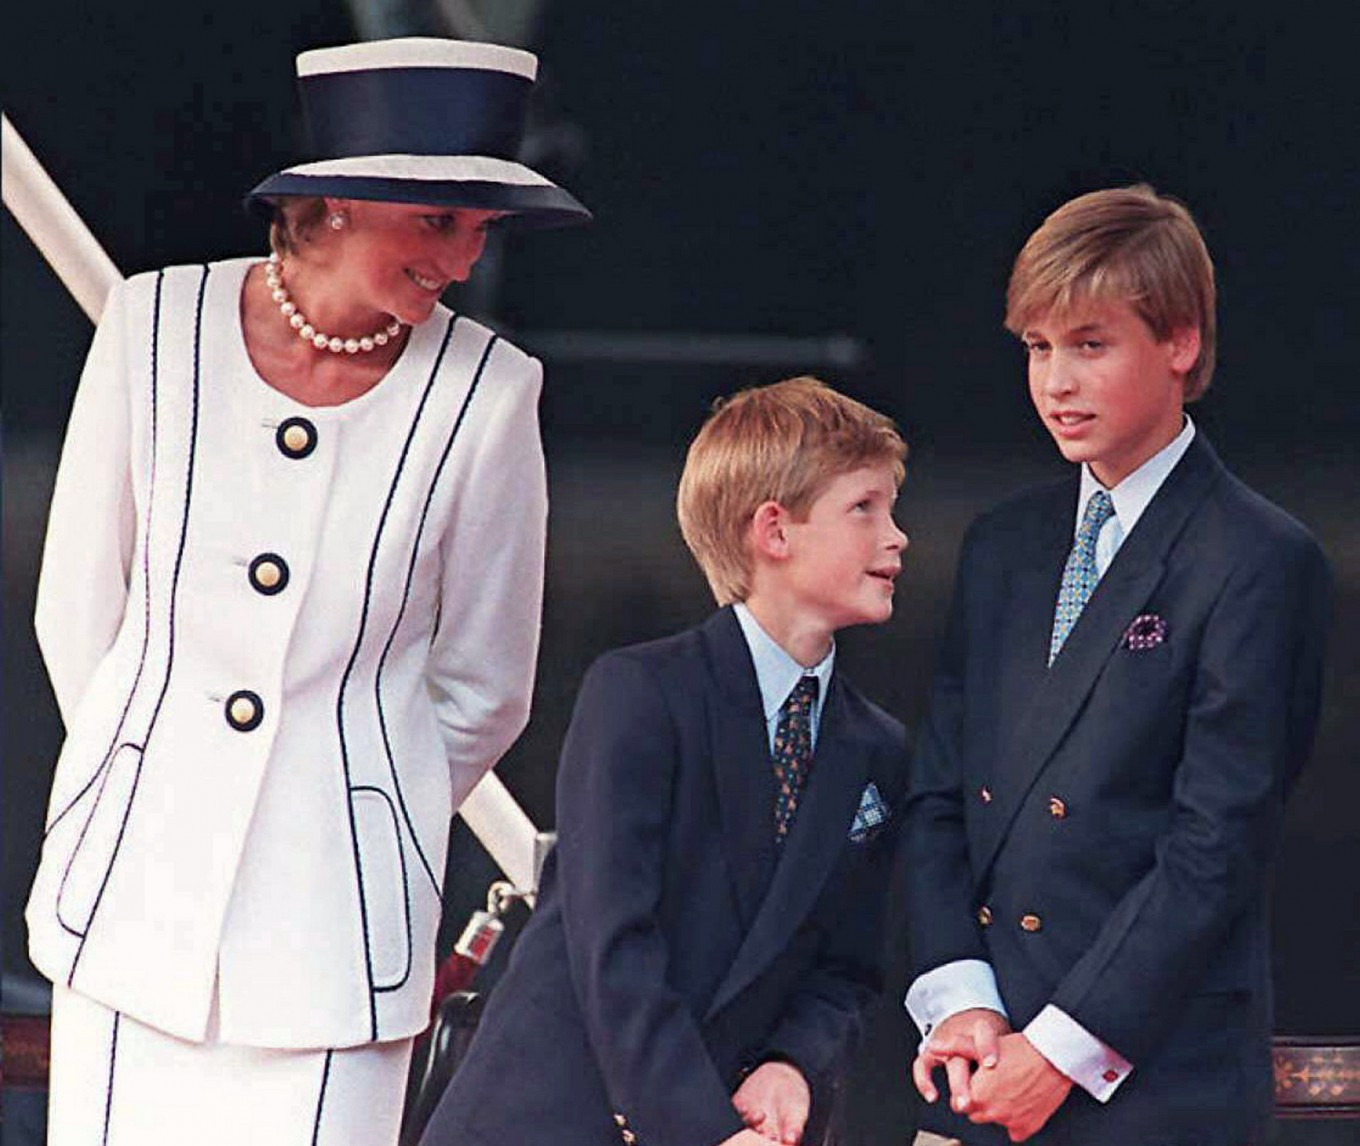 Prince William and Prince Harry unite for award named after their mother